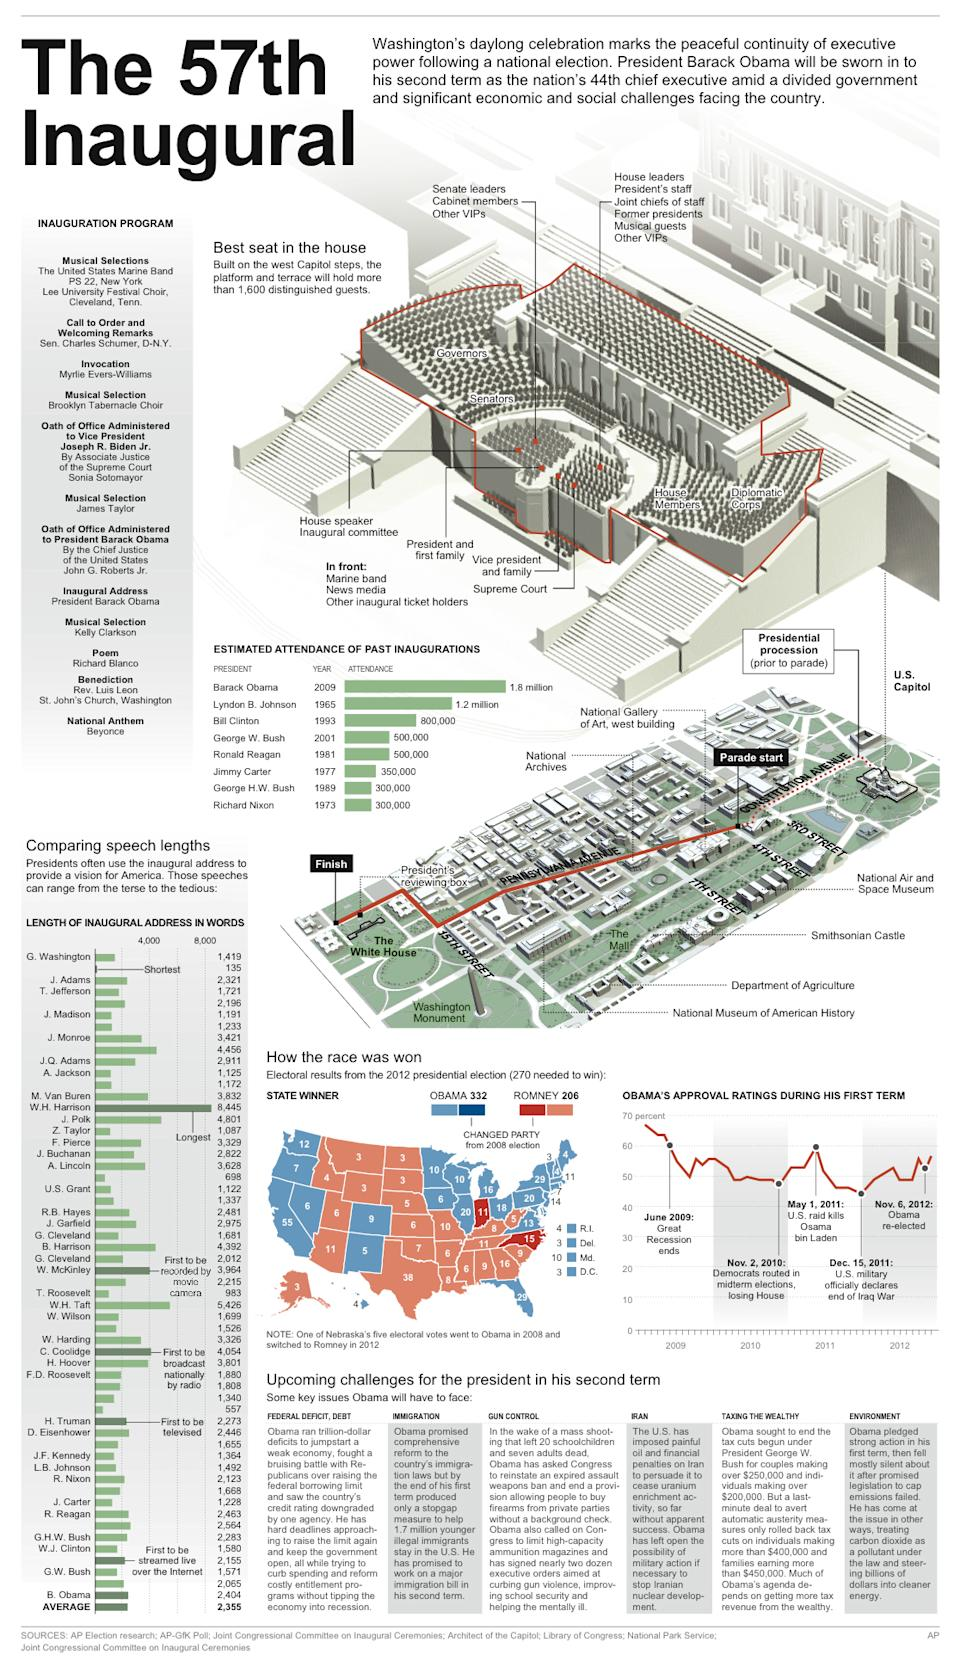 Graphic shows inauguration details and election results; UPDATES with additional seating details